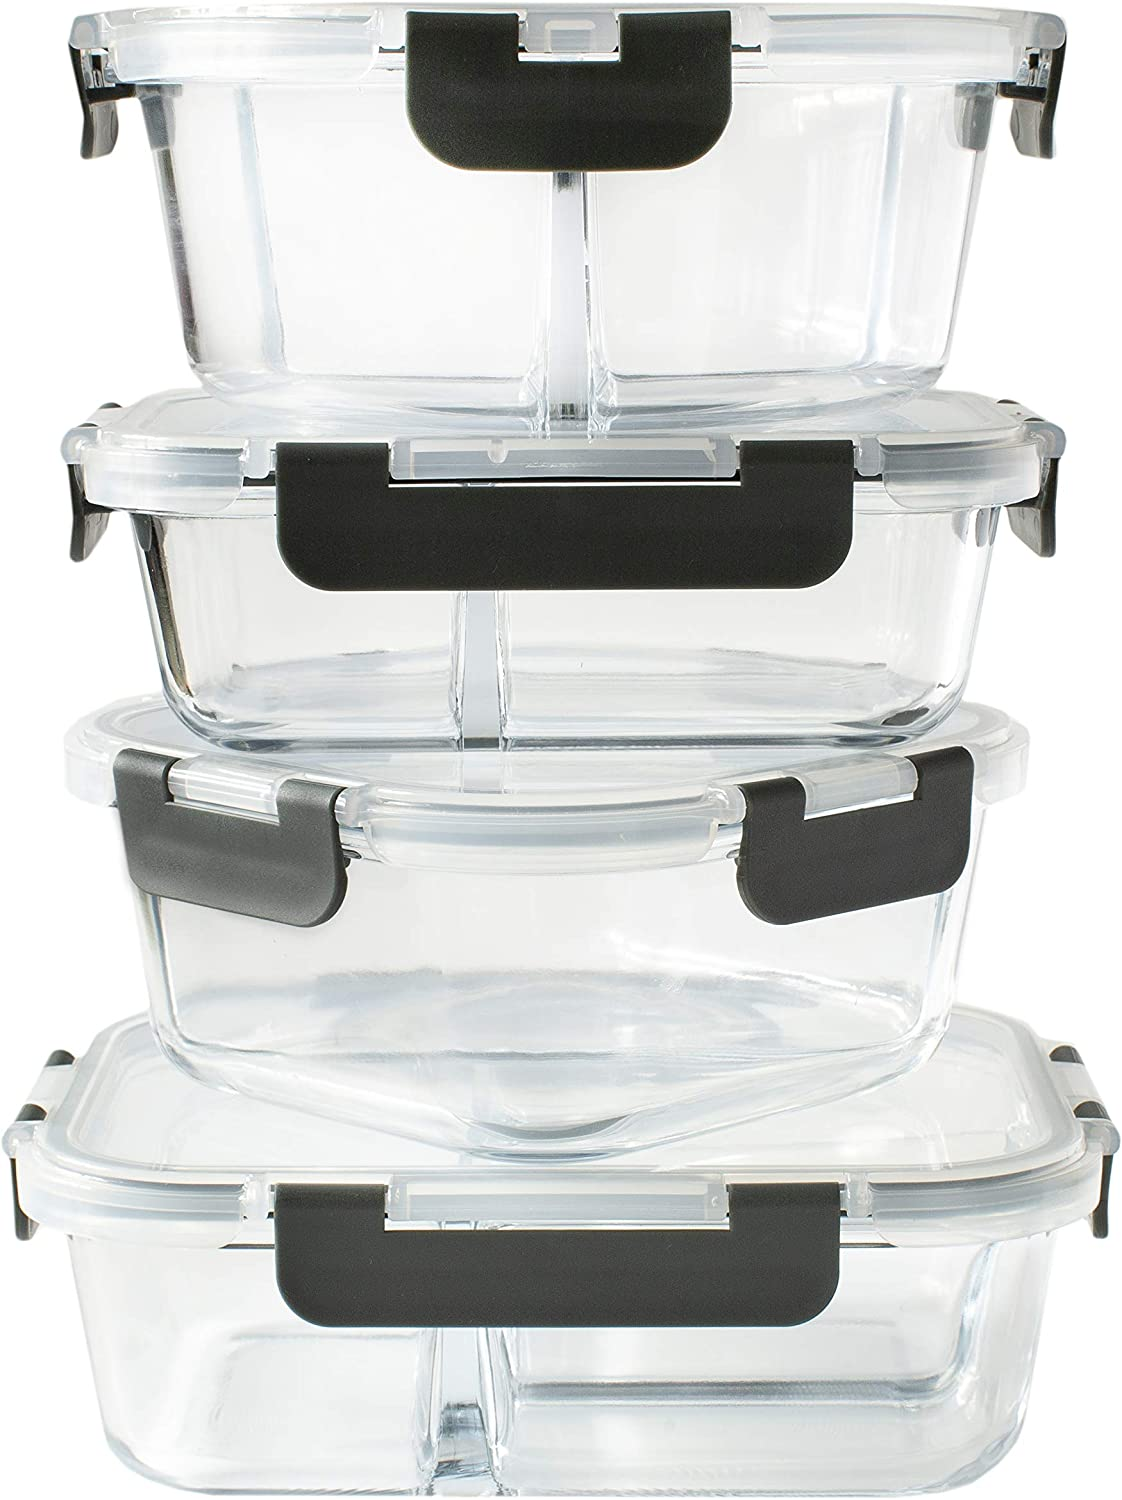 Orii 4 Piece Glass Food Storage Compartment Containers with Lids, Multiple, Charcoal Grey